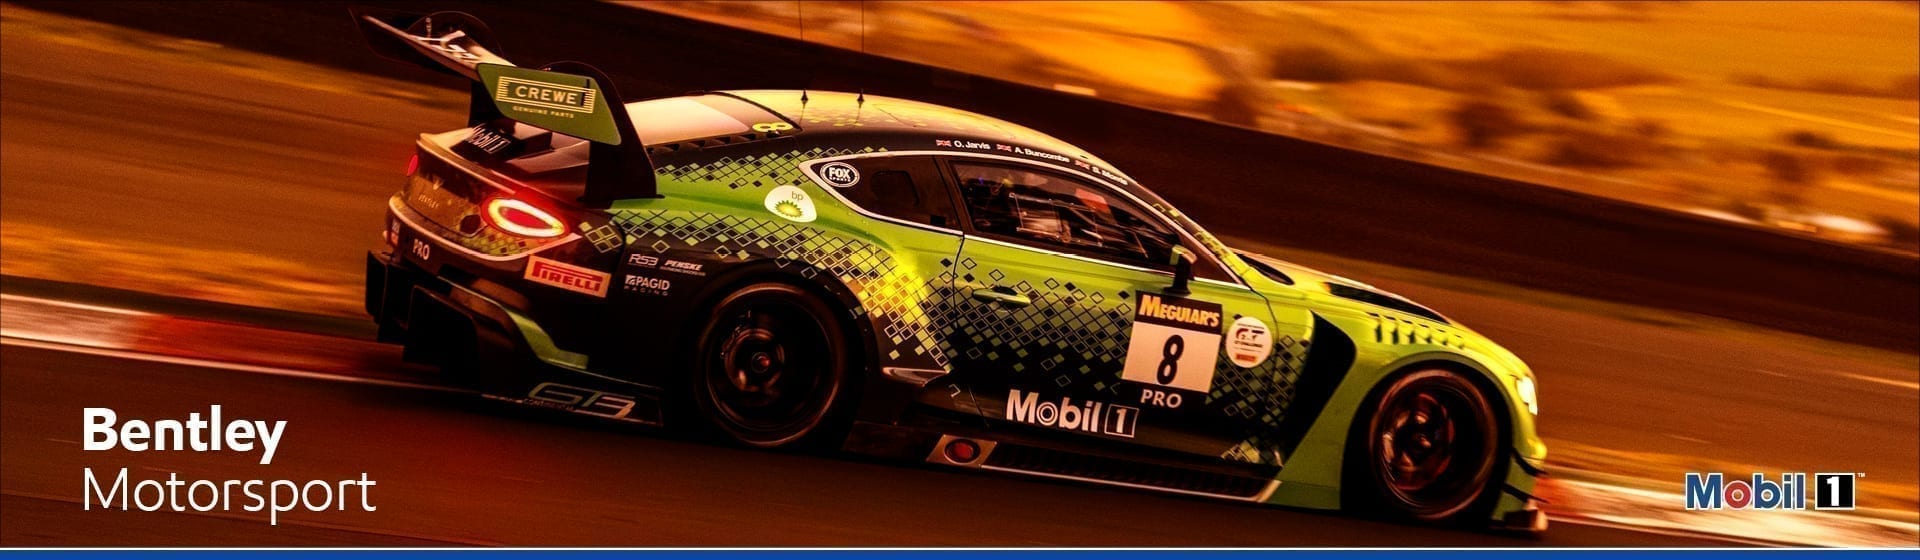 M1 - Web_Heroes-2020_Motorsport-Bentley